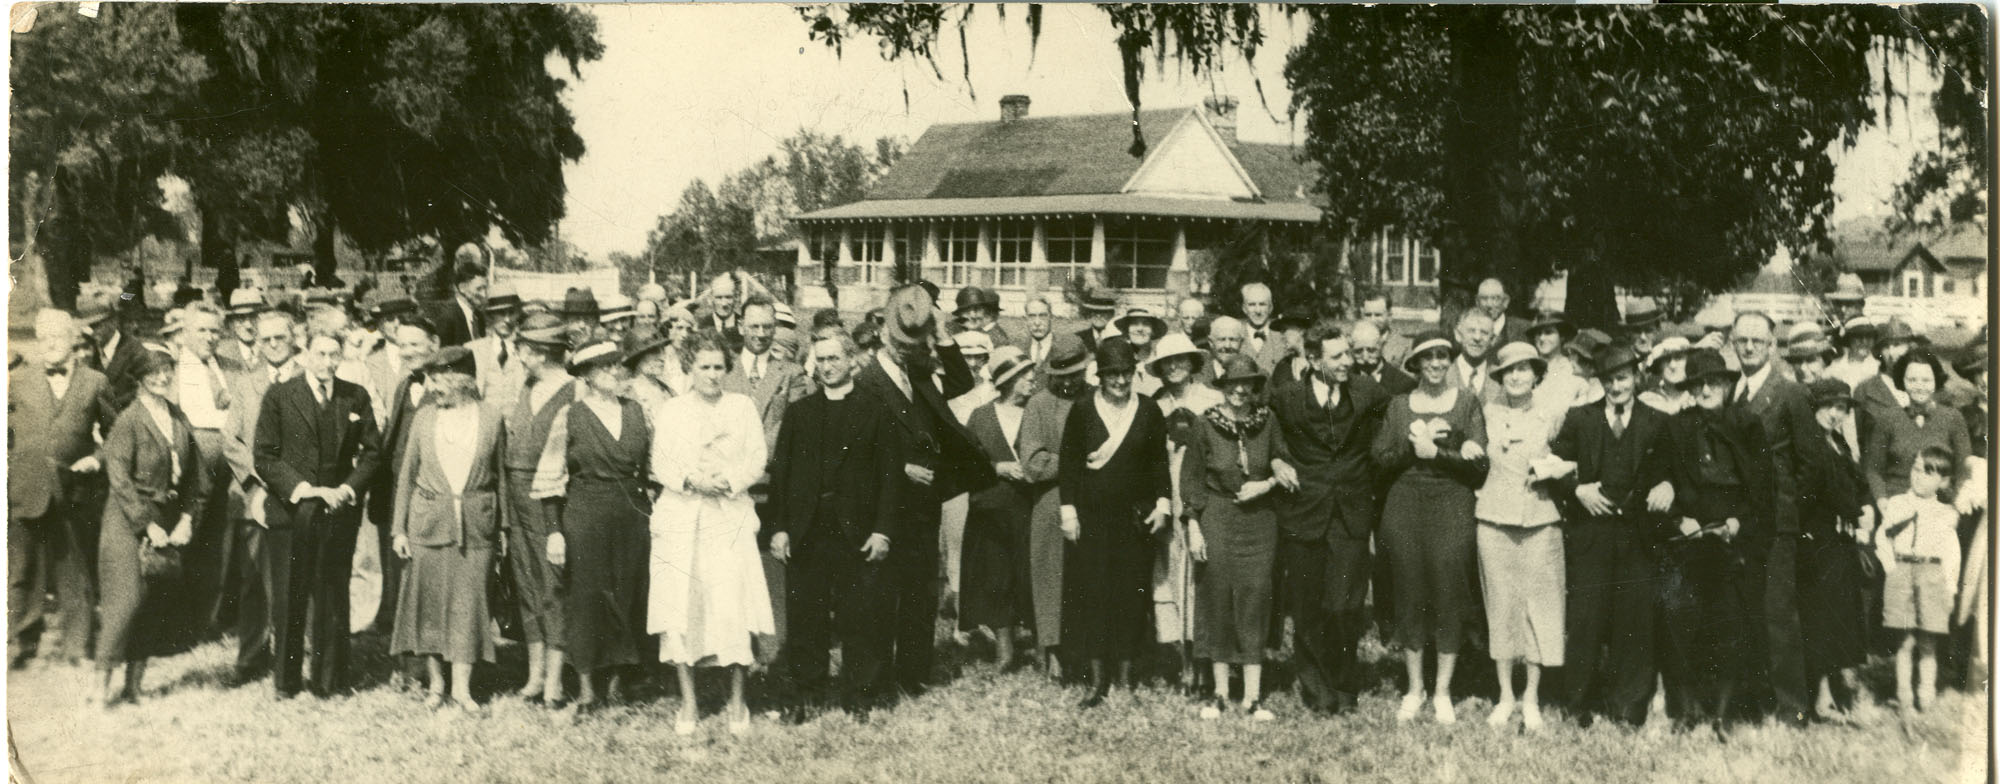 Agricultural Society's trip to Du Pont's Place